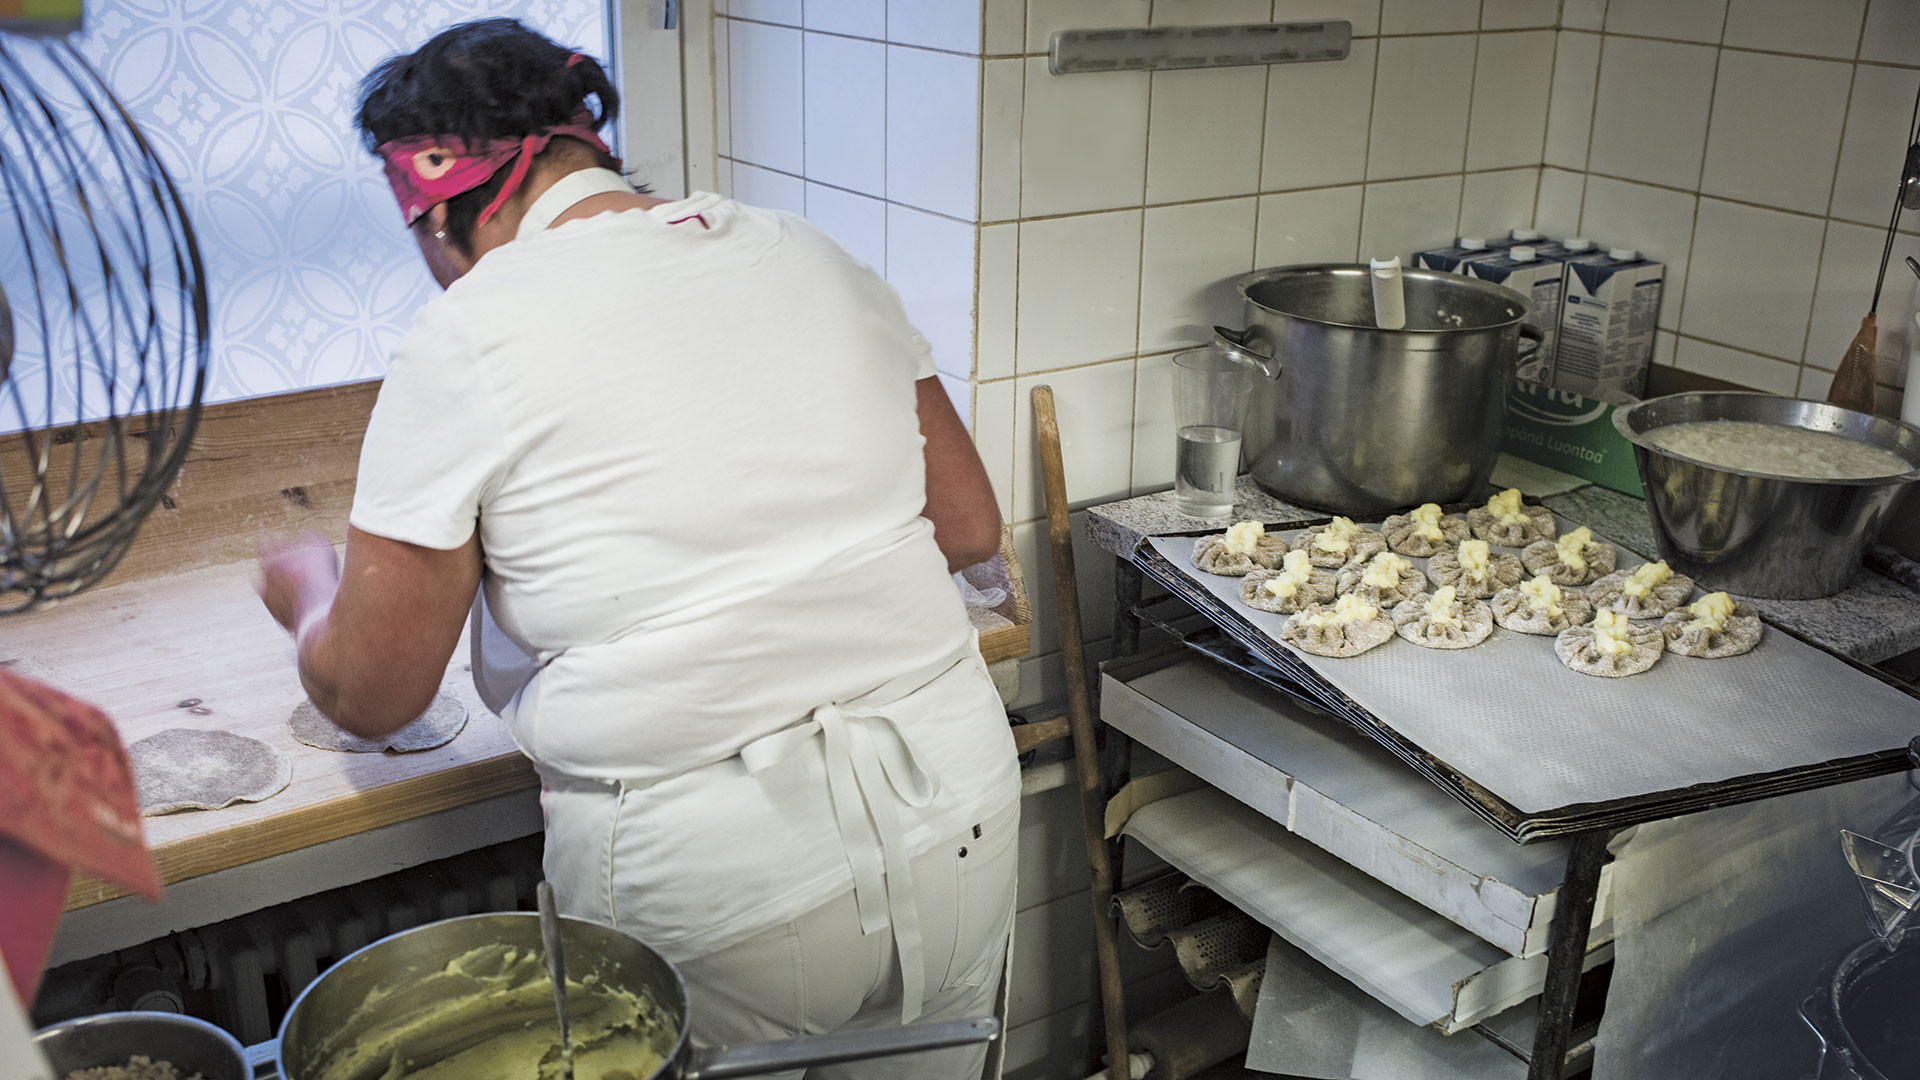 Preparing Karelian pasties in a bakery, Helsinki, Finland, Autumn 2013, from Magnus Nilsson's Nordic: A Photographic Essay of Landscapes, Food and People